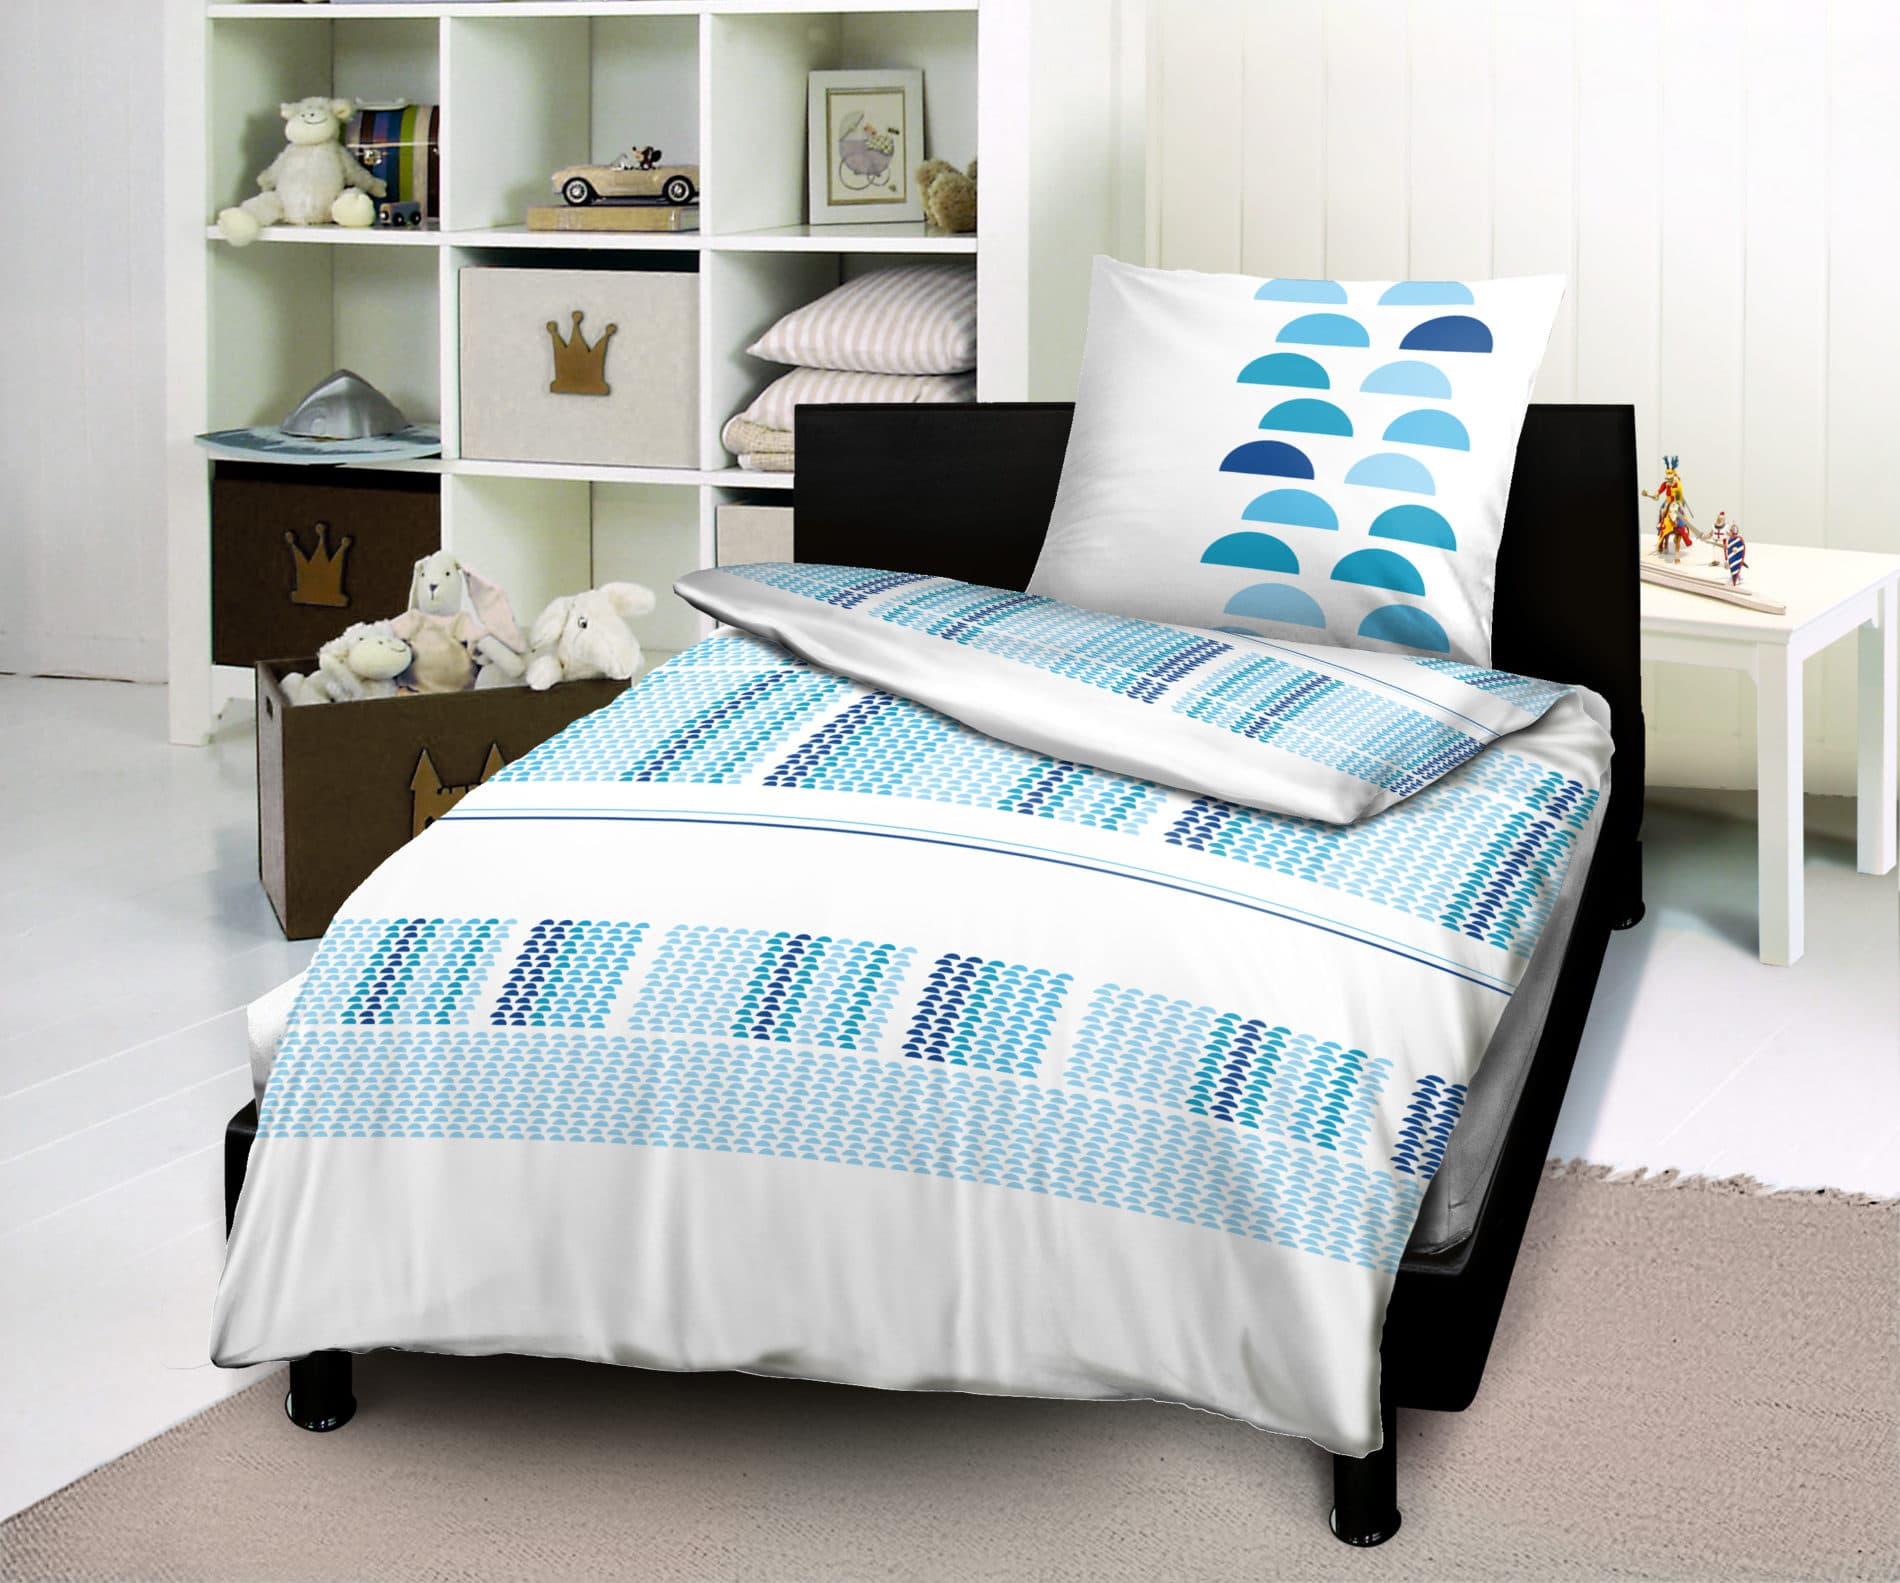 housse de couette 1 place 1 taie lugano turquoise. Black Bedroom Furniture Sets. Home Design Ideas